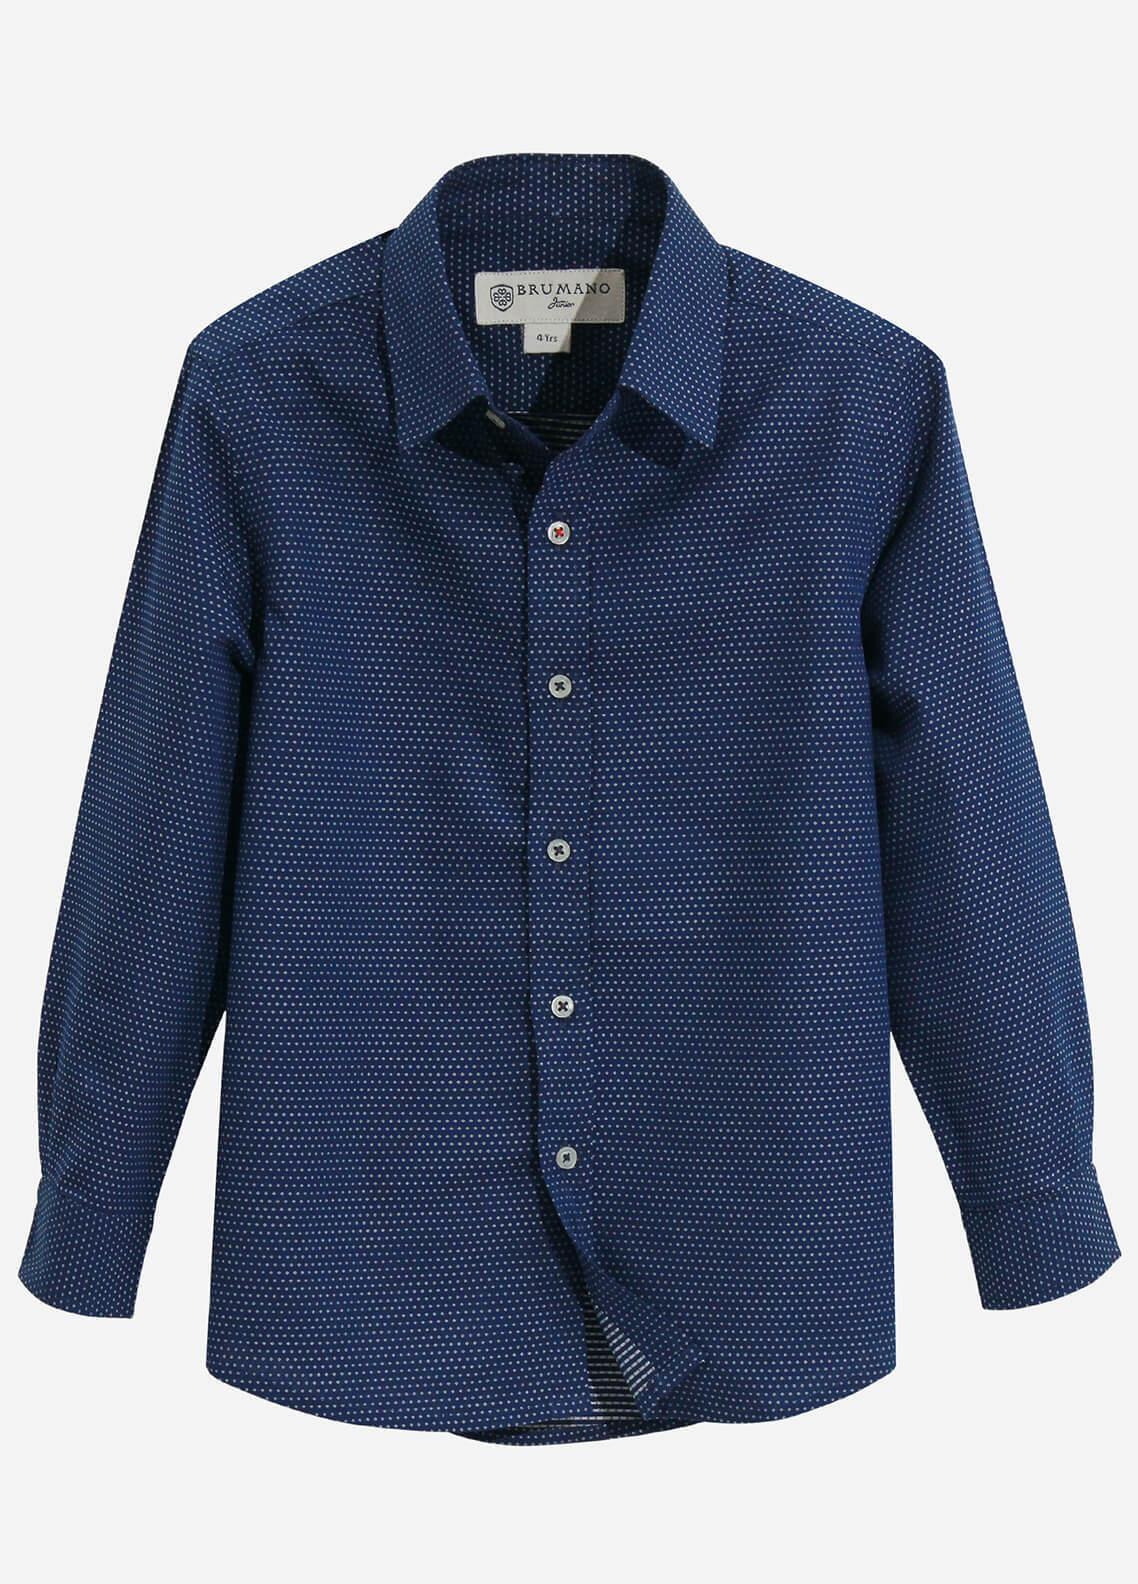 Brumano Cotton Casual Shirts for Boys - Navy Blue BRM-565